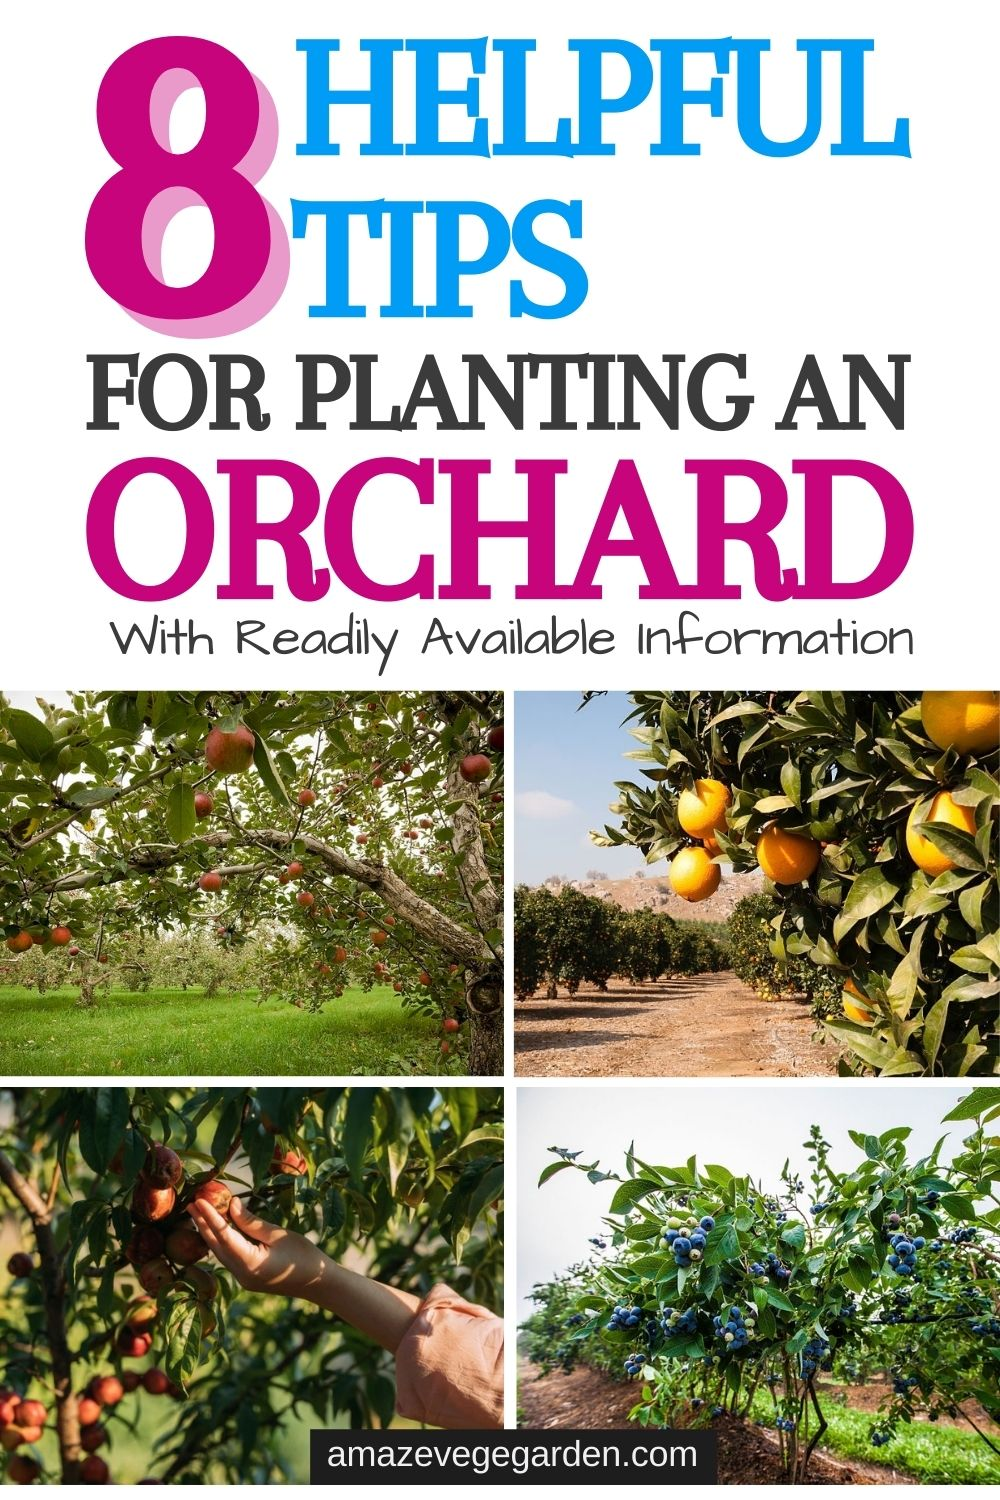 8 Helpful Tips For Planting An Orchard